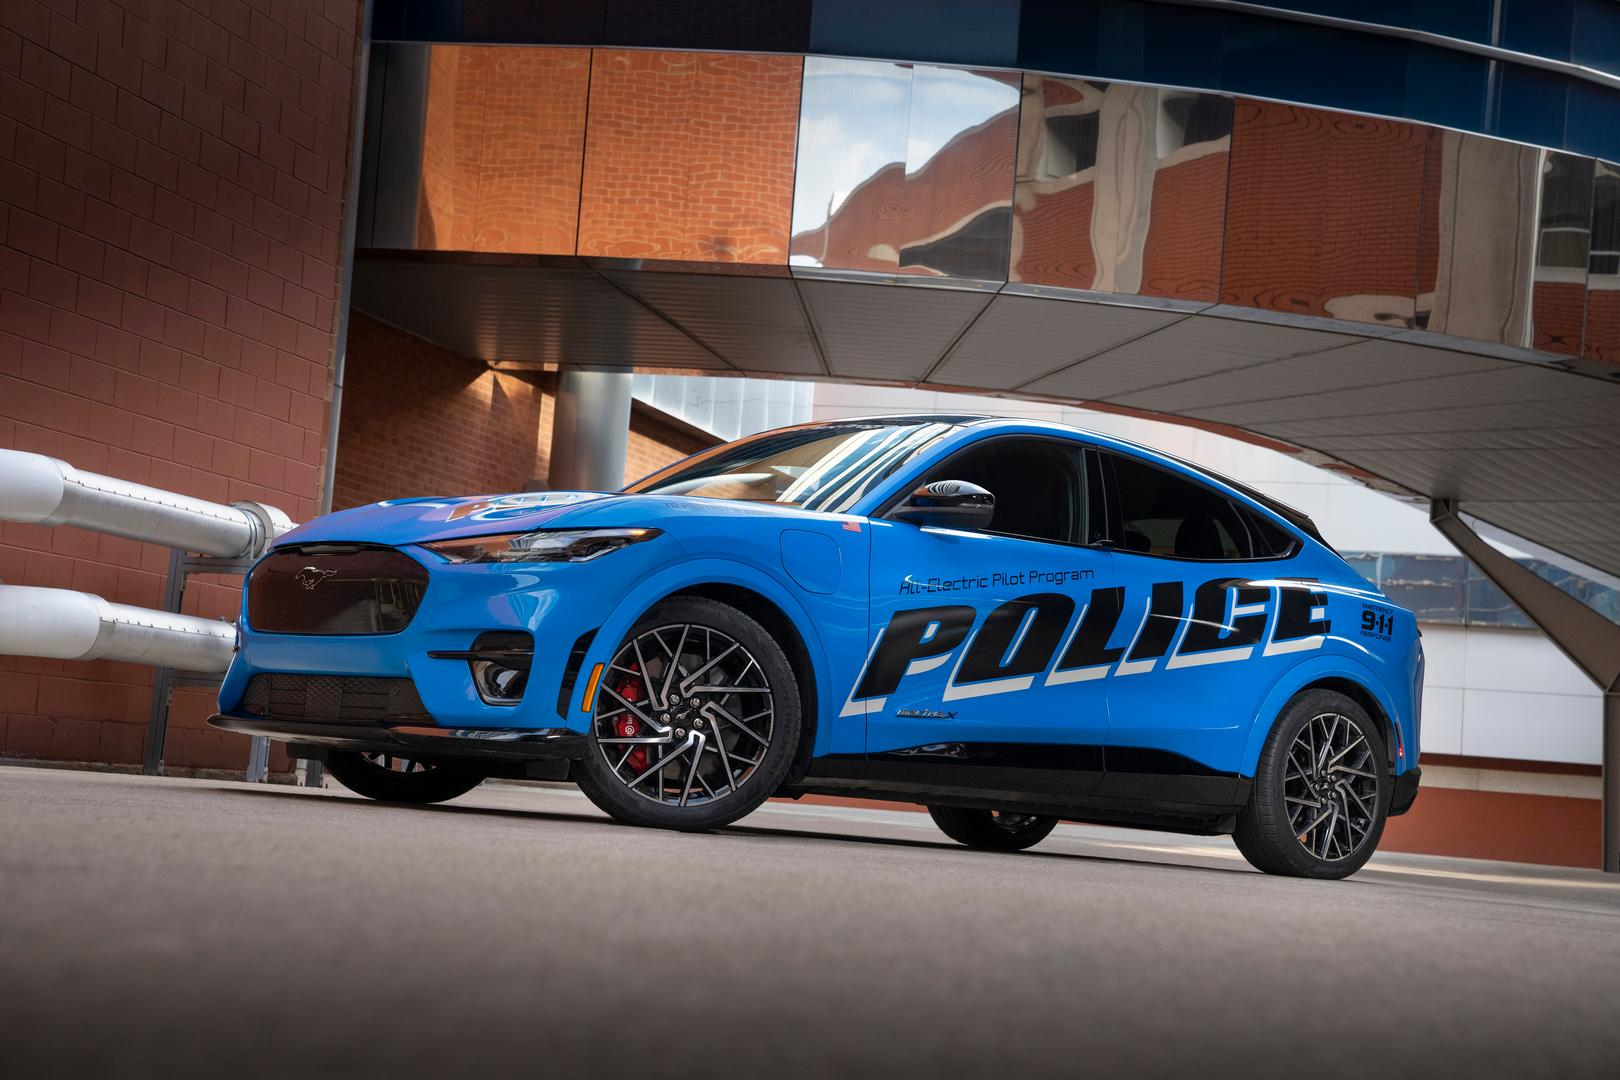 Ford Mustang Mach E Police